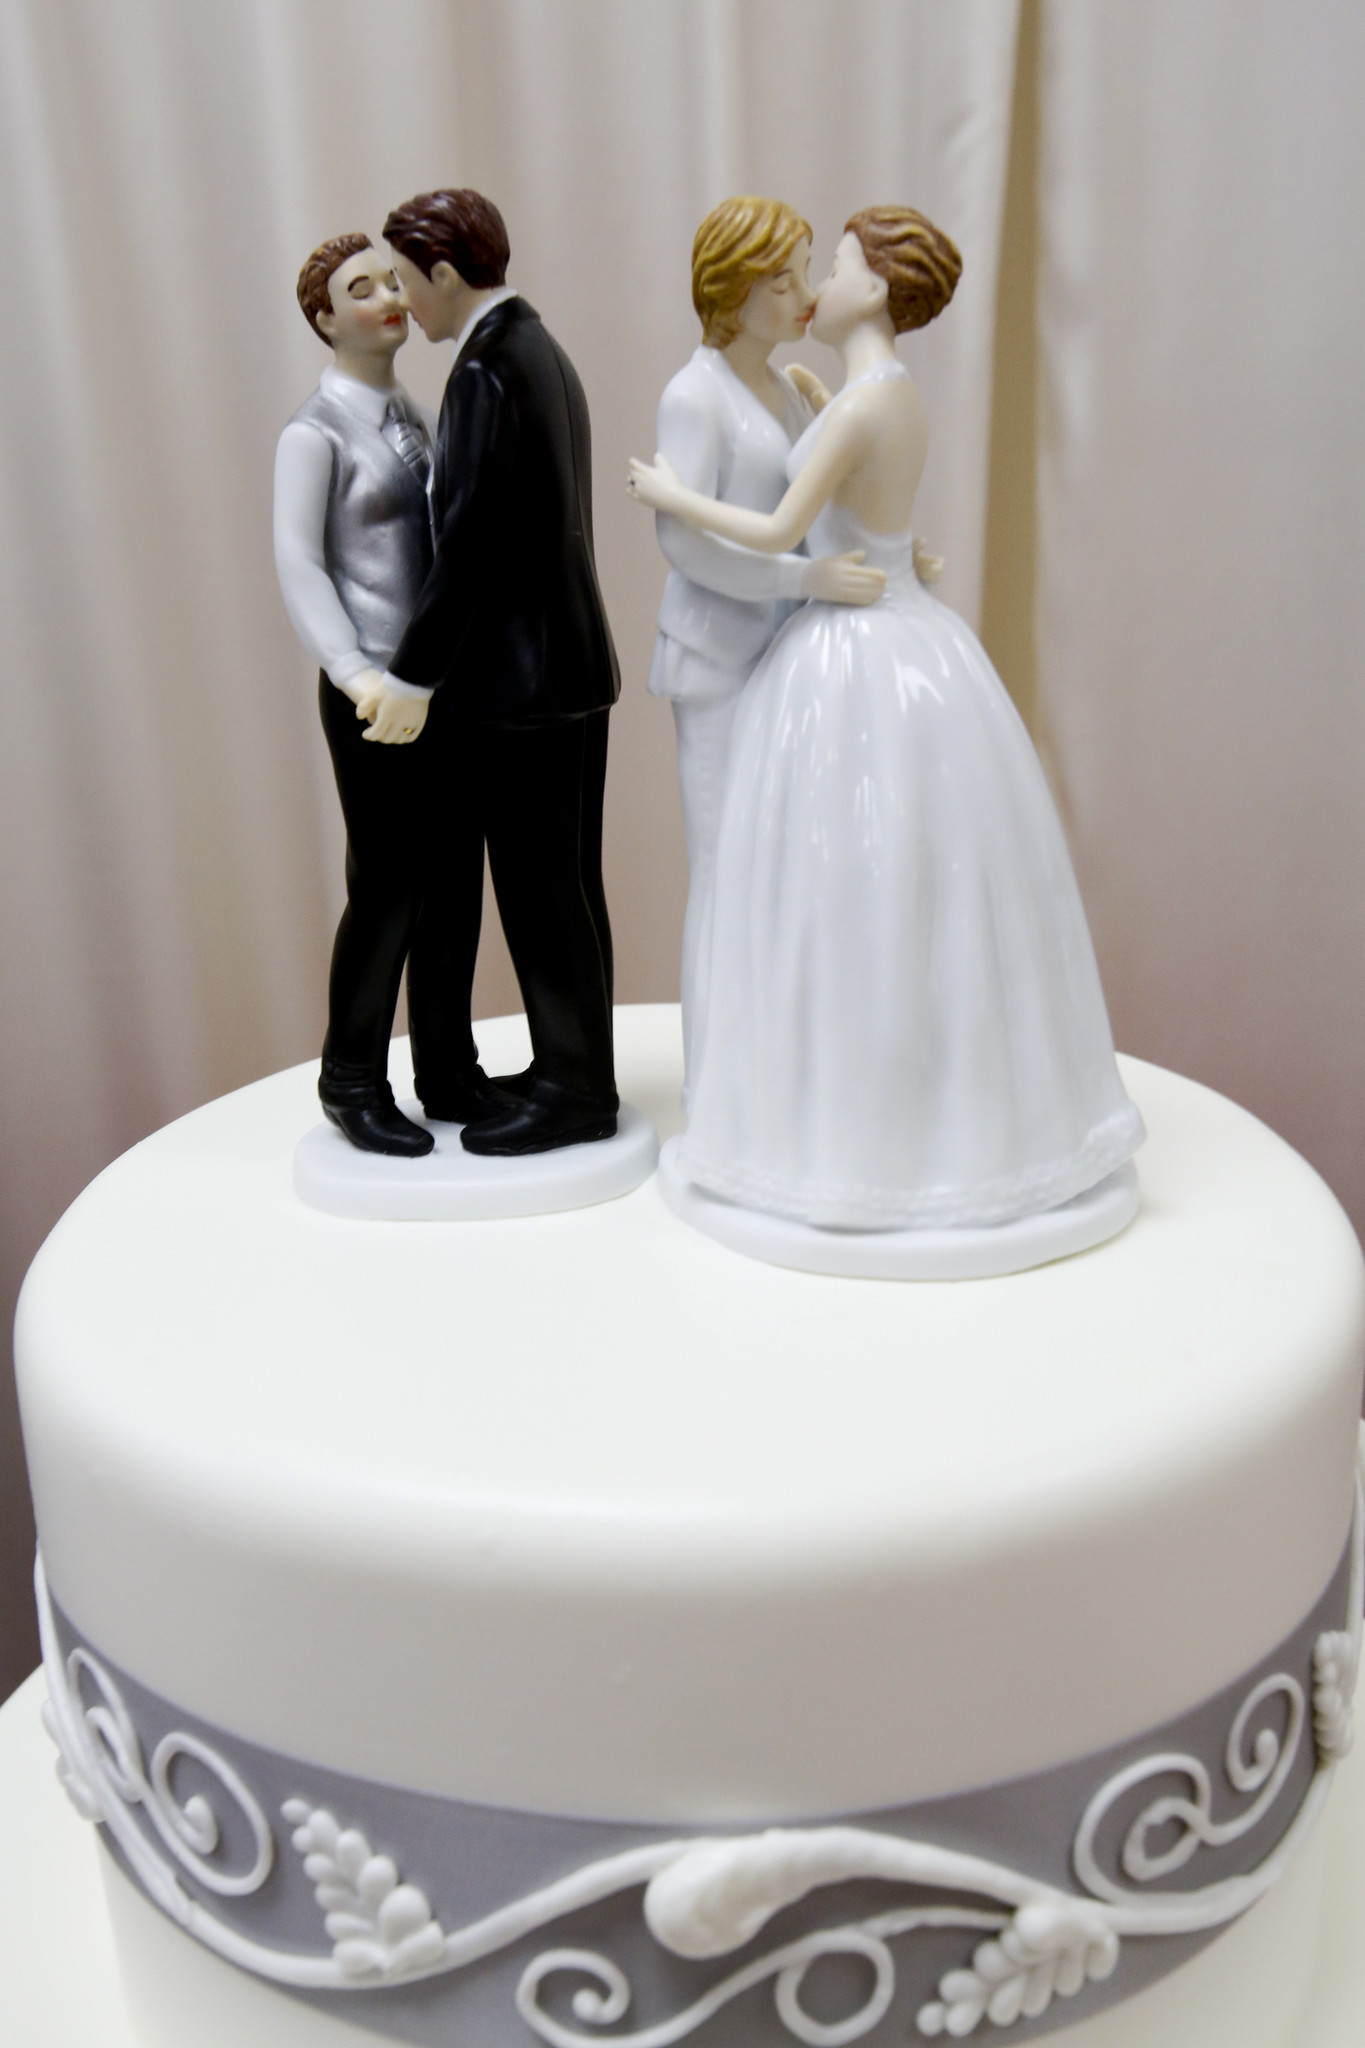 Cake Images For Marriage : Former Oregon bakery owners must pay USD135,000 for denying ...